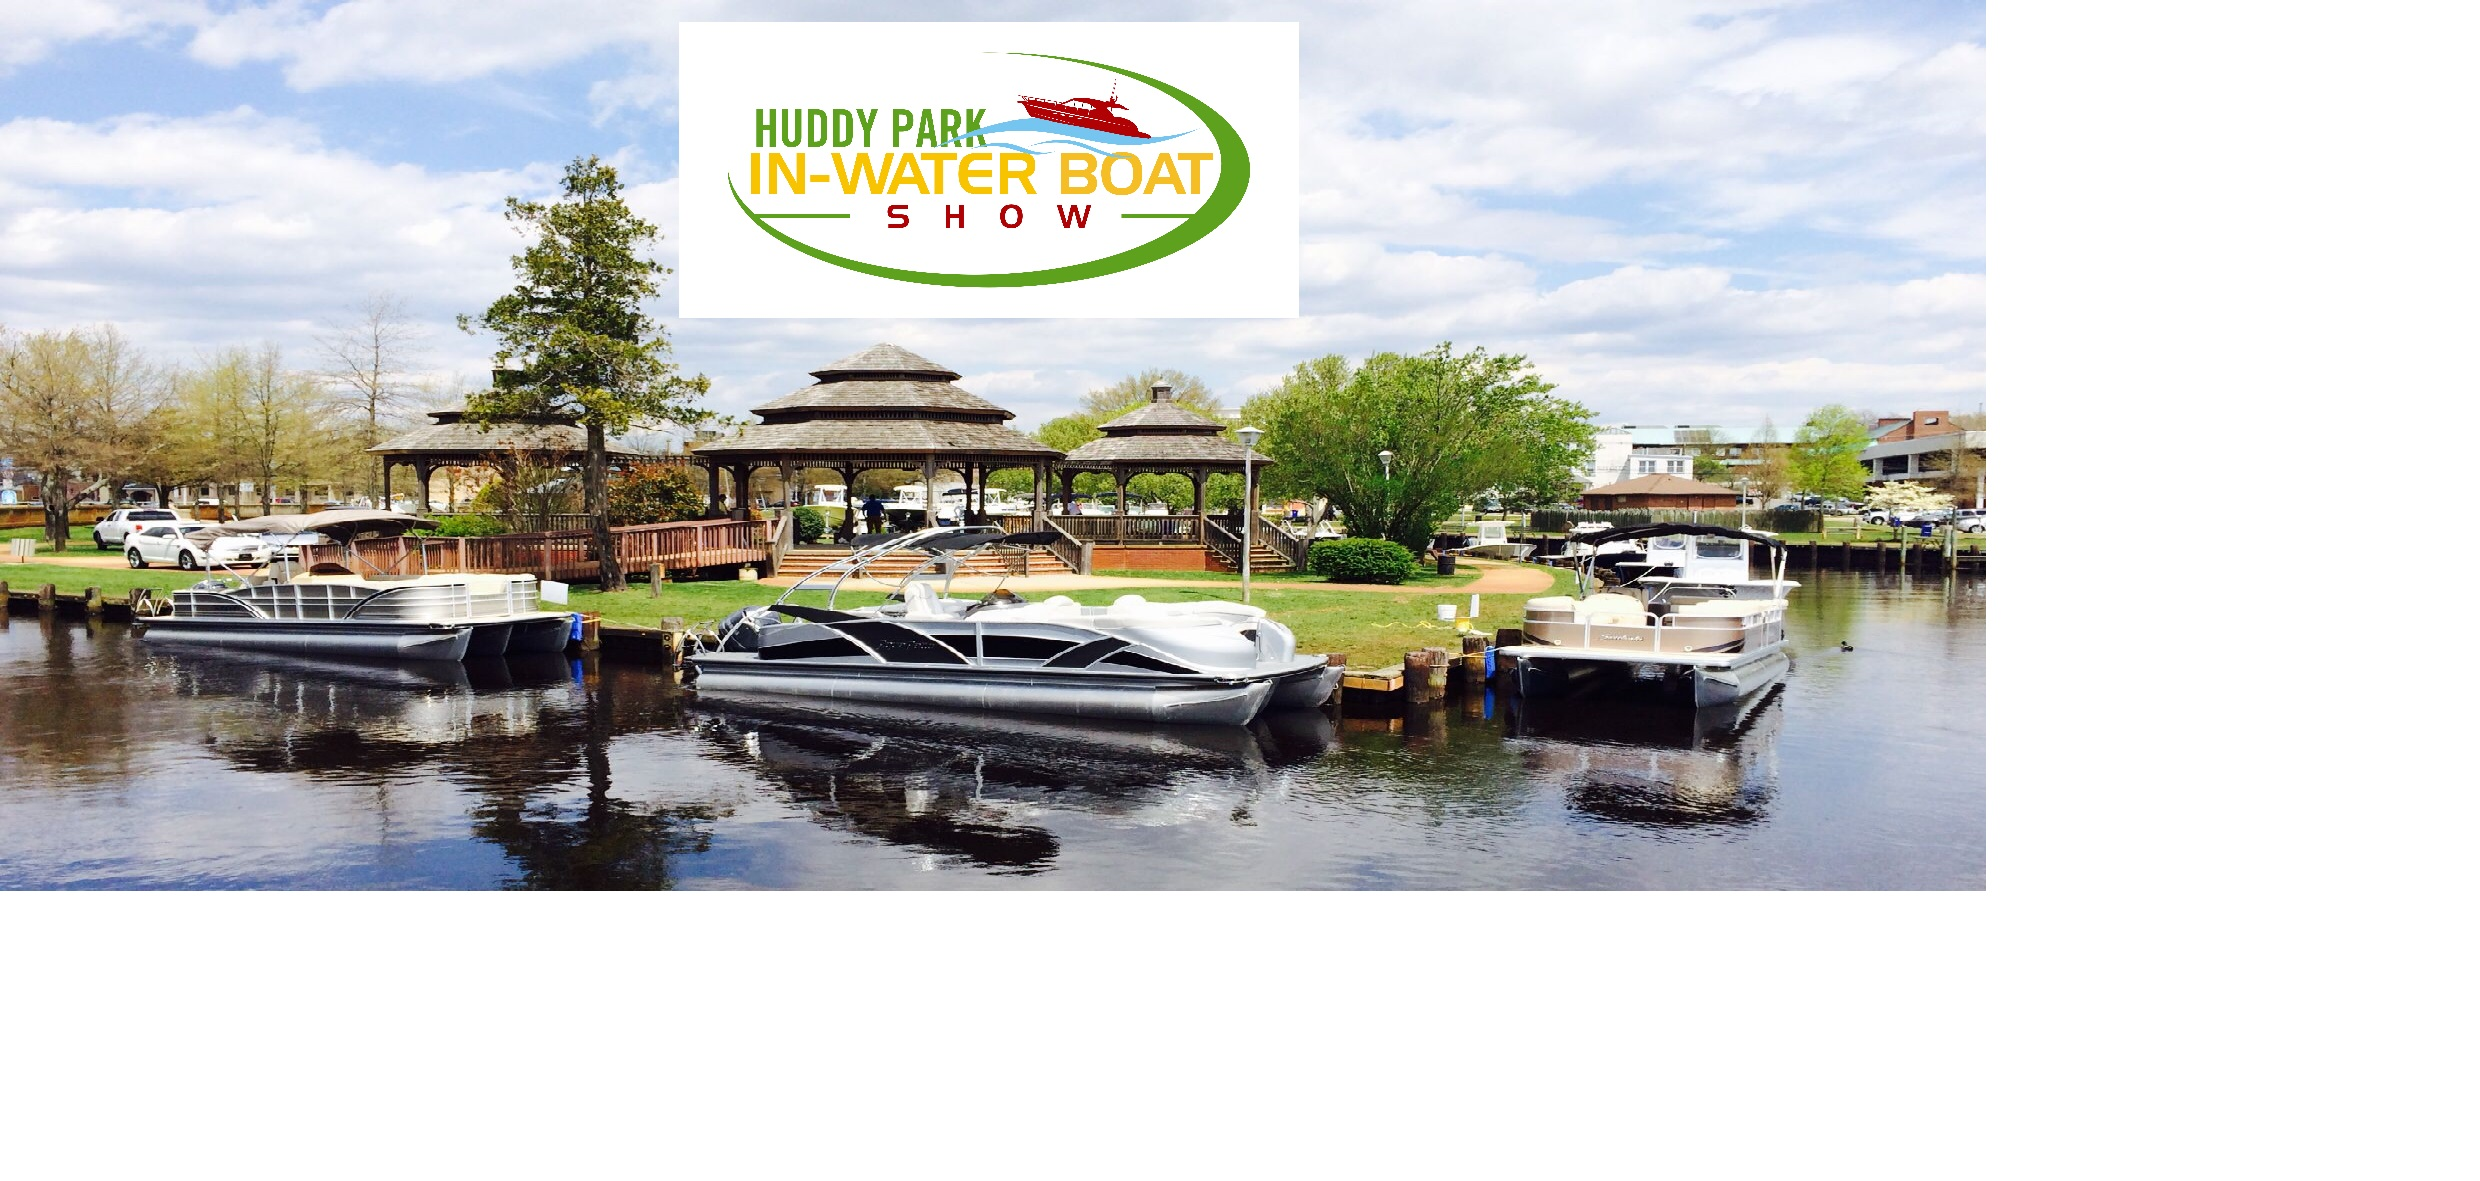 Updated Huddy boat show logo and header